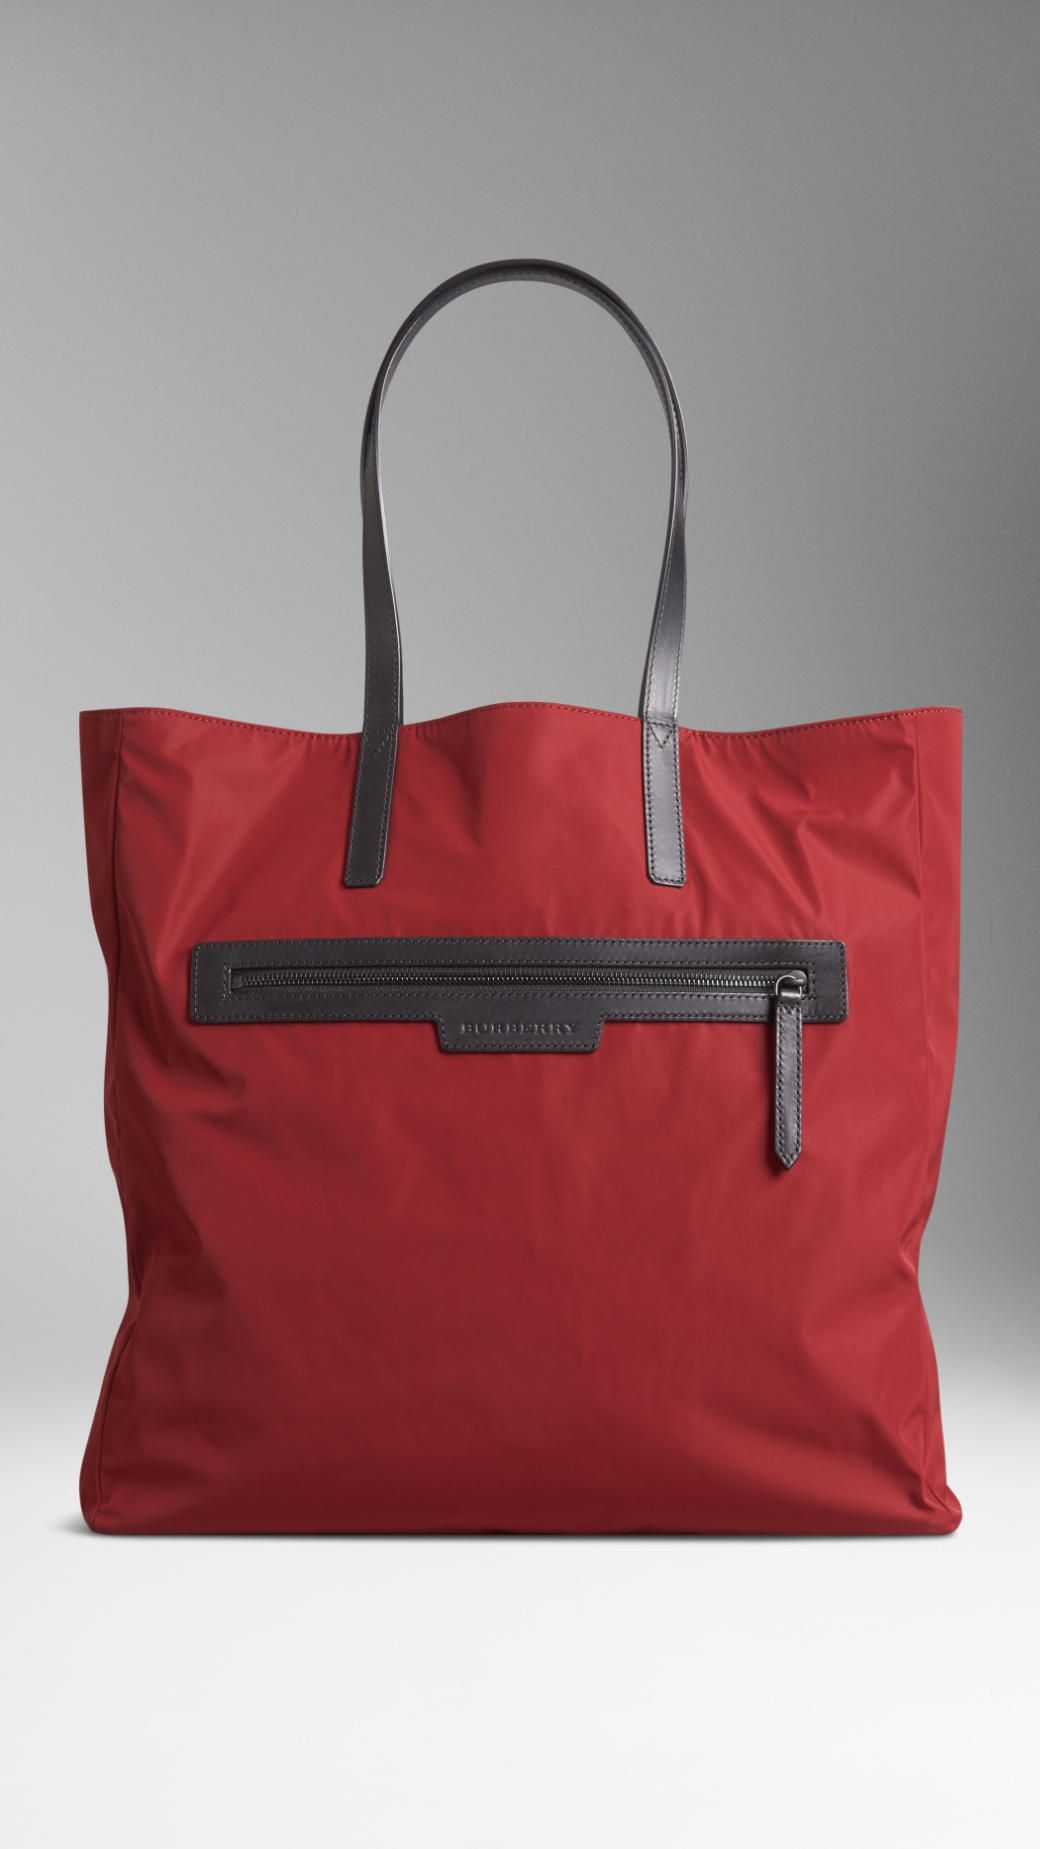 Reversible Lightweight Tote Bag  1f7d3c7e0f559